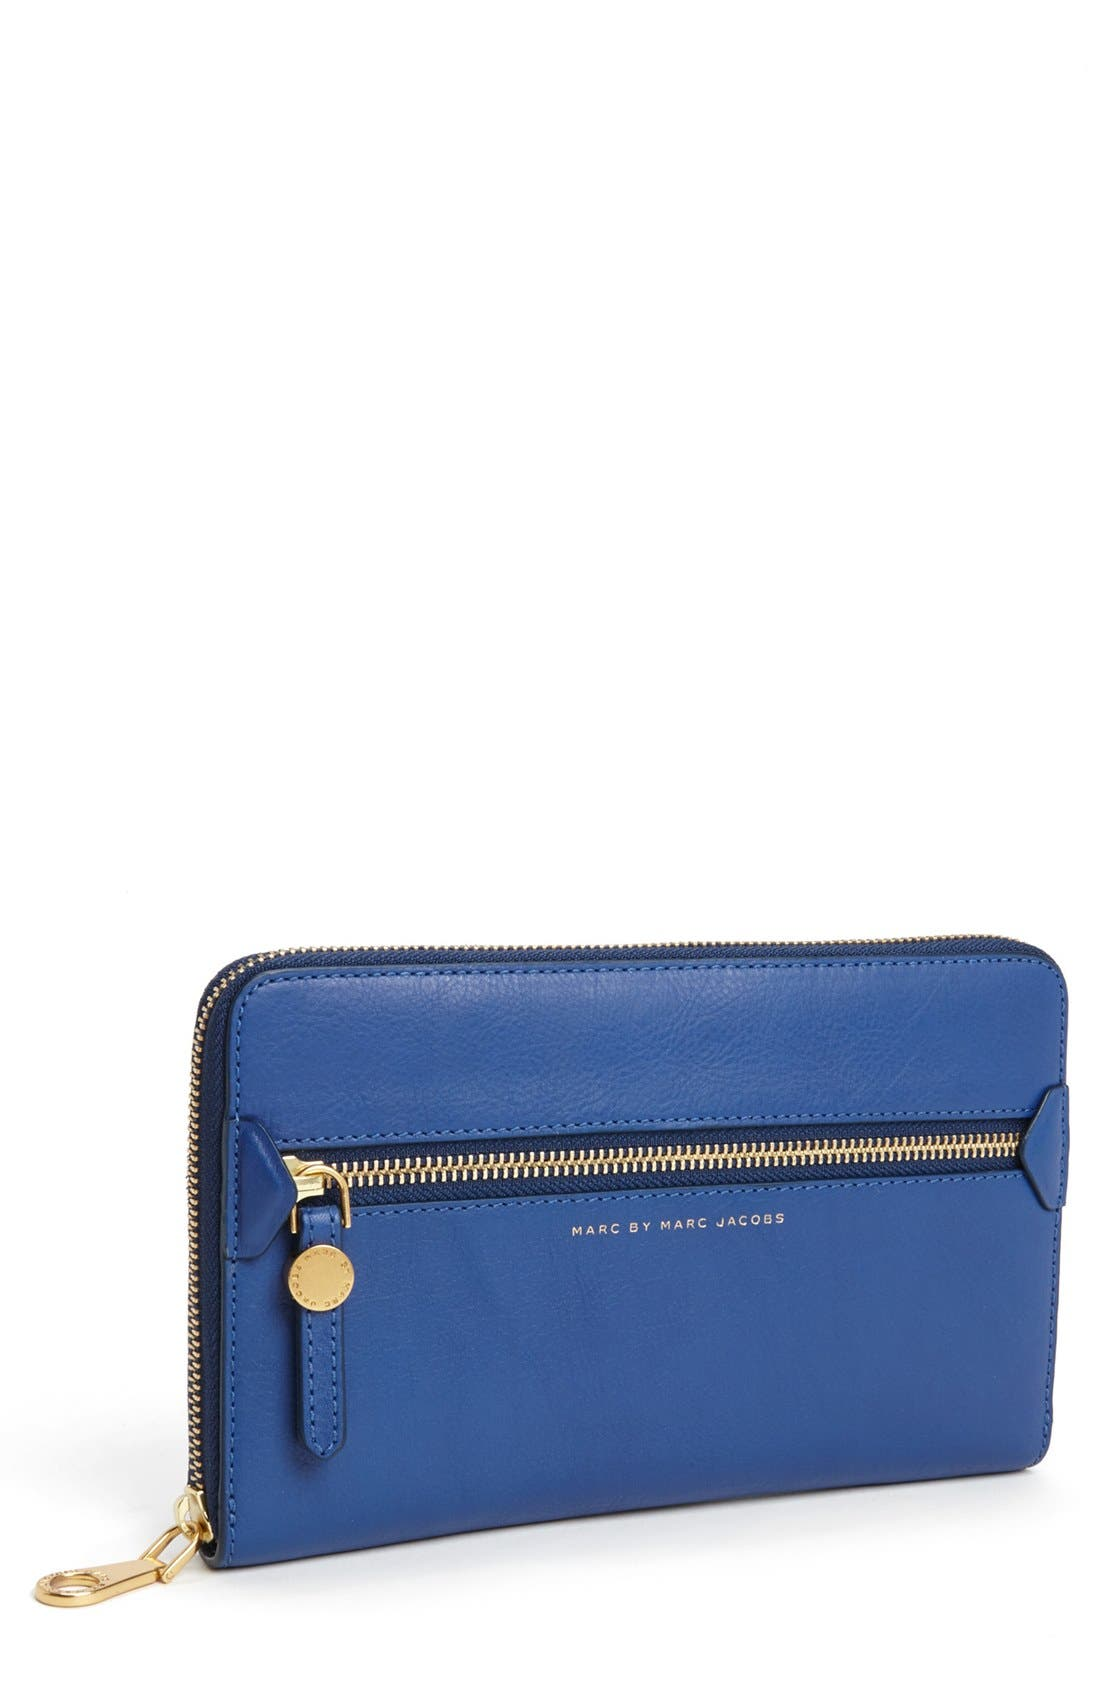 Main Image - MARC BY MARC JACOBS 'Globetrotter' Travel Wallet